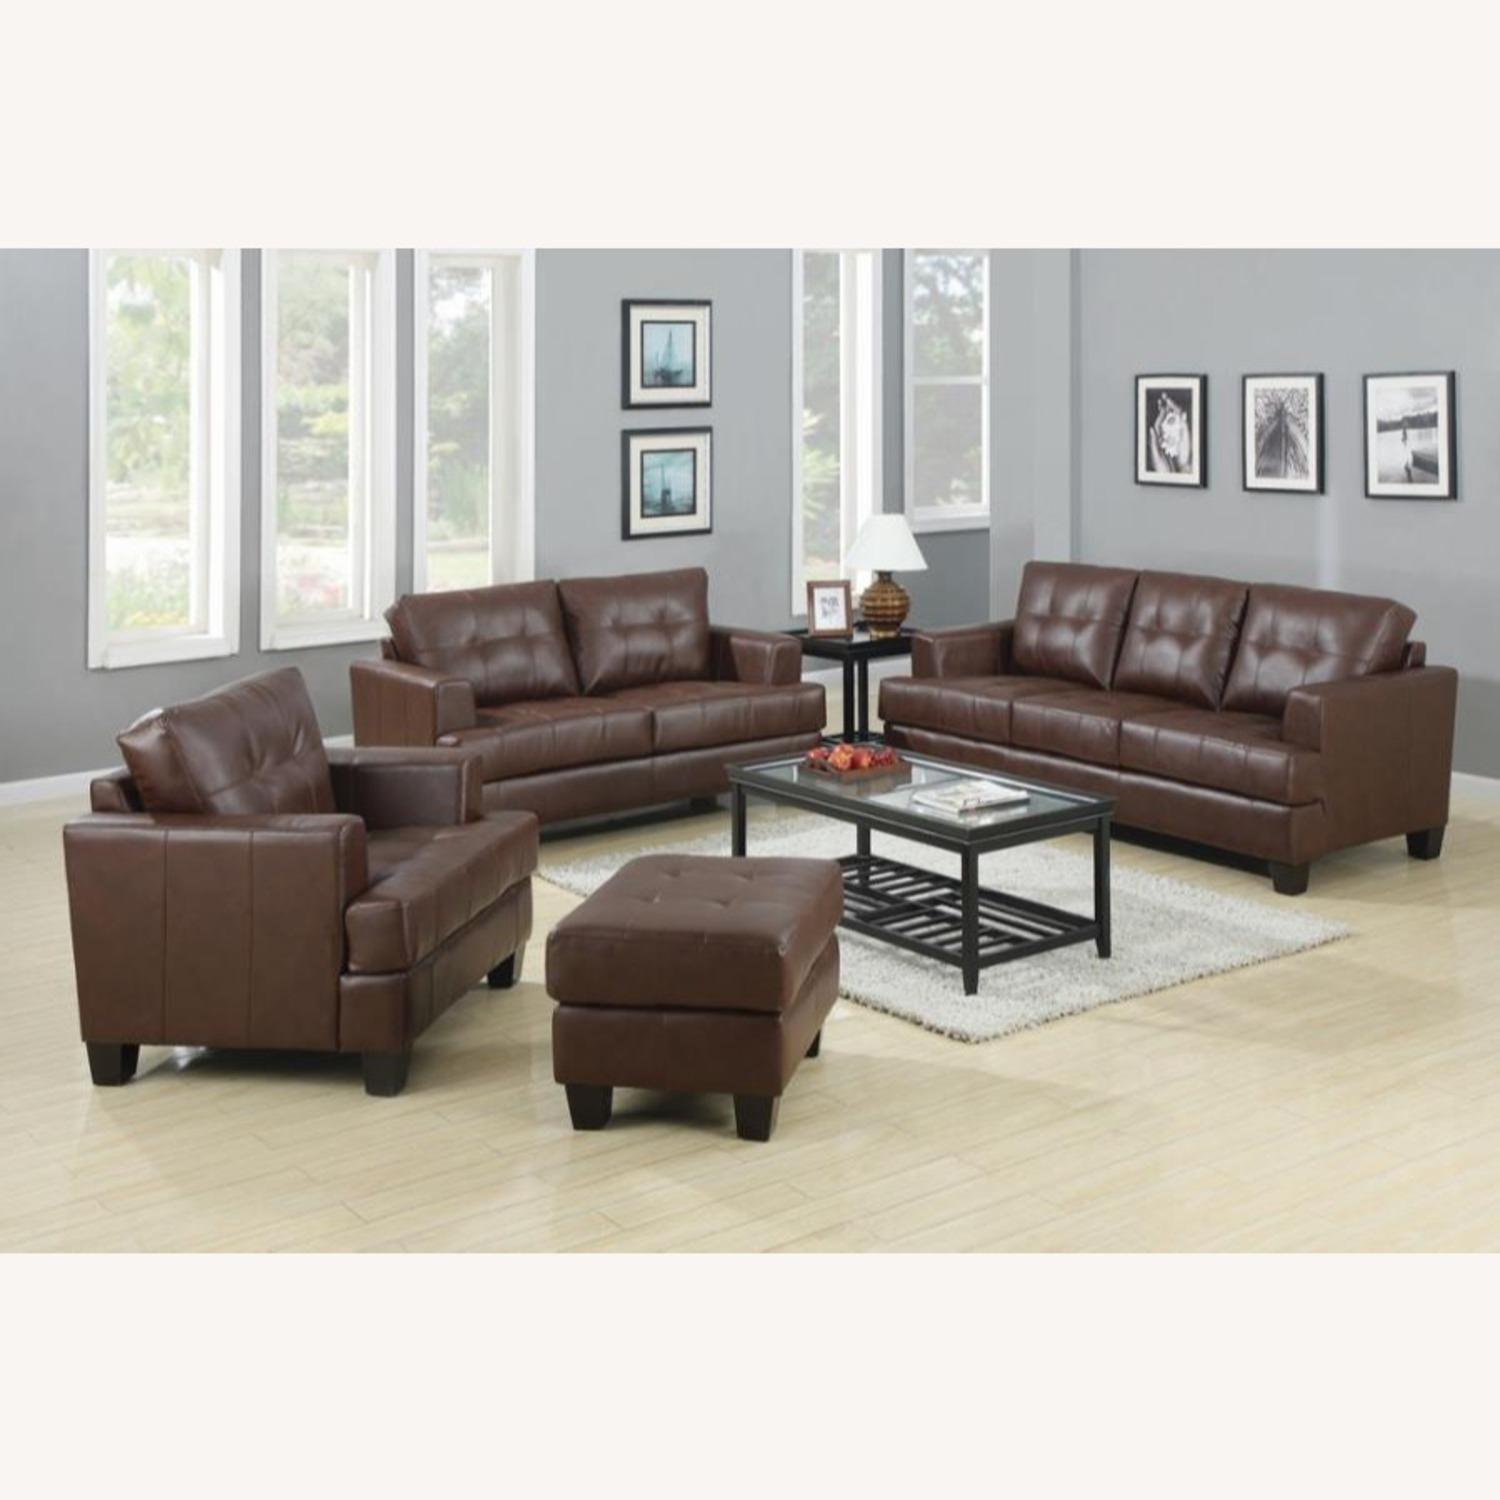 Ottoman In Brown Padded Breathable Leatherette - image-2